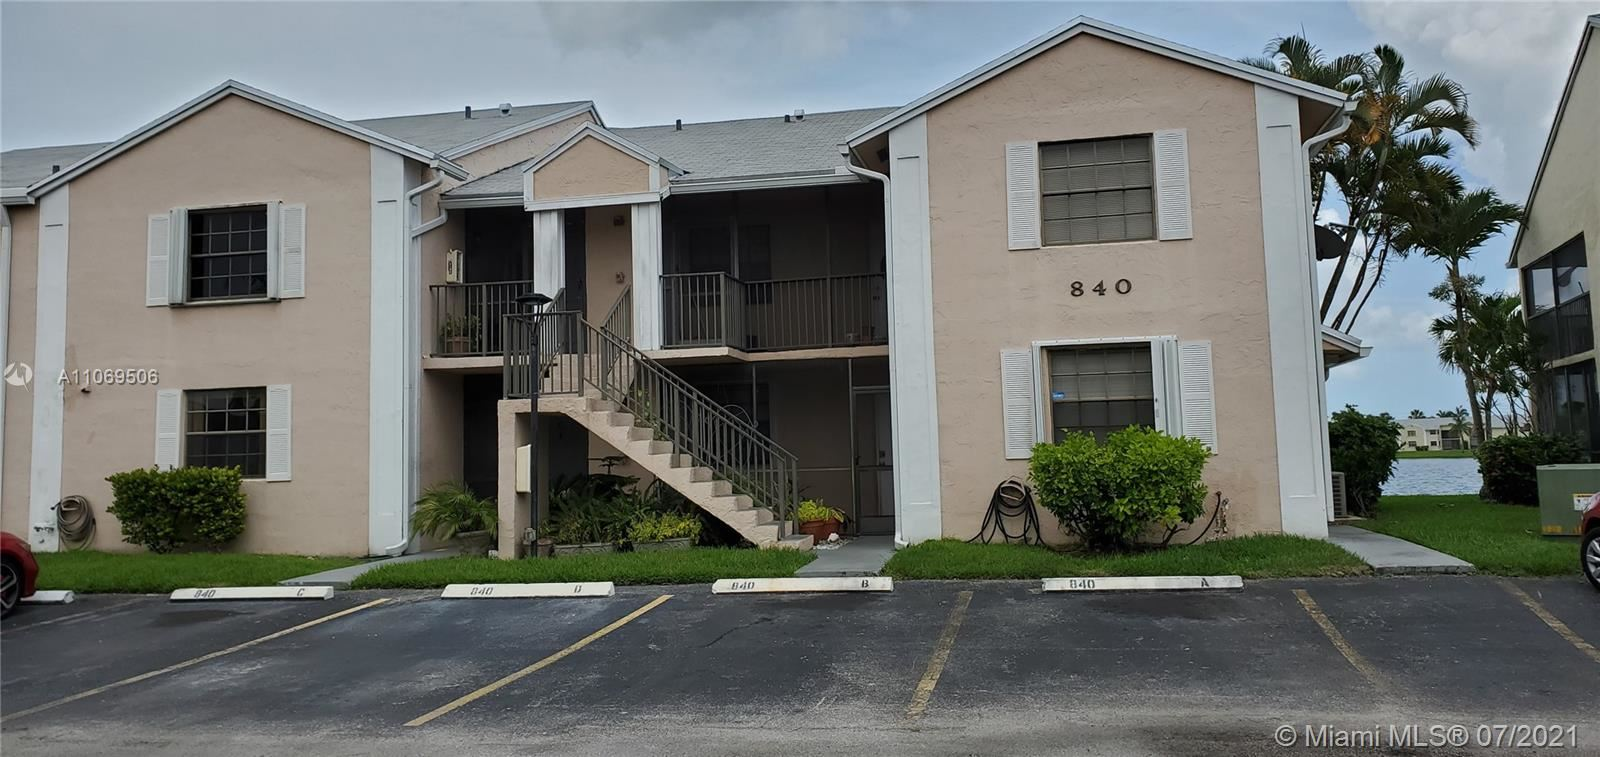 840 Independence Dr #840B, Homestead, FL 33034 - #: A11069506